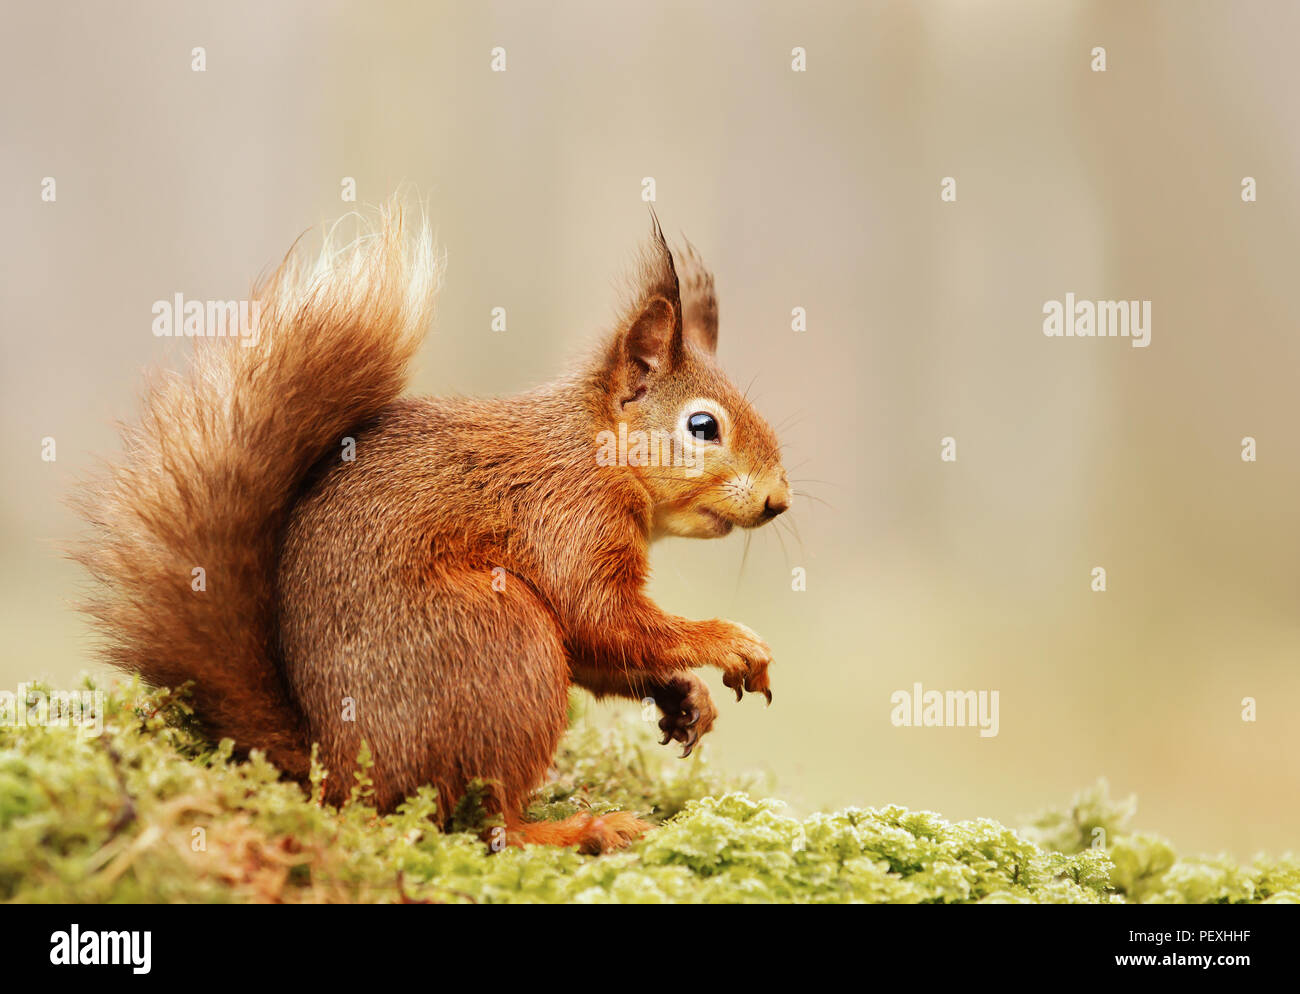 Isolated Eurasian red squirrel (Sciurus vulgaris) sitting on a mossy log. - Stock Image